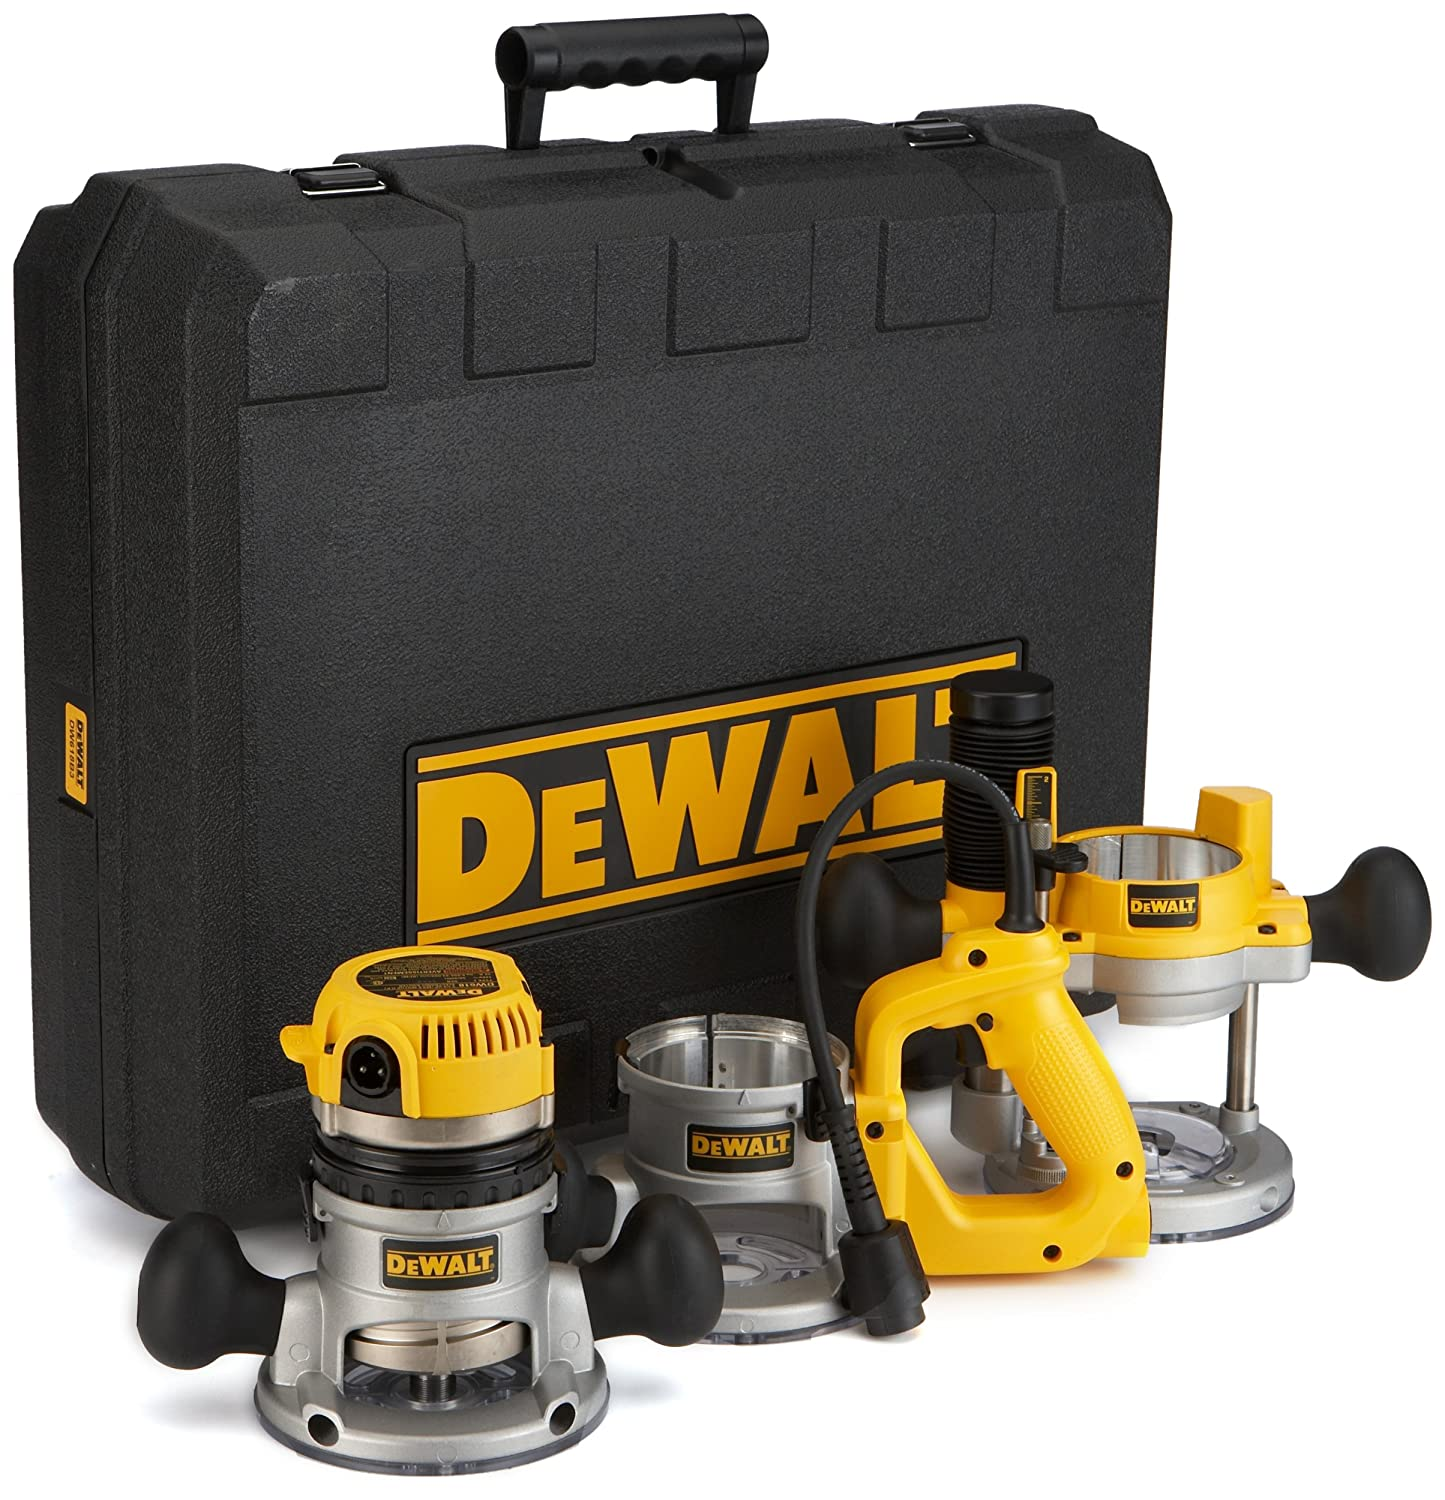 DEWALT DW618B3 review